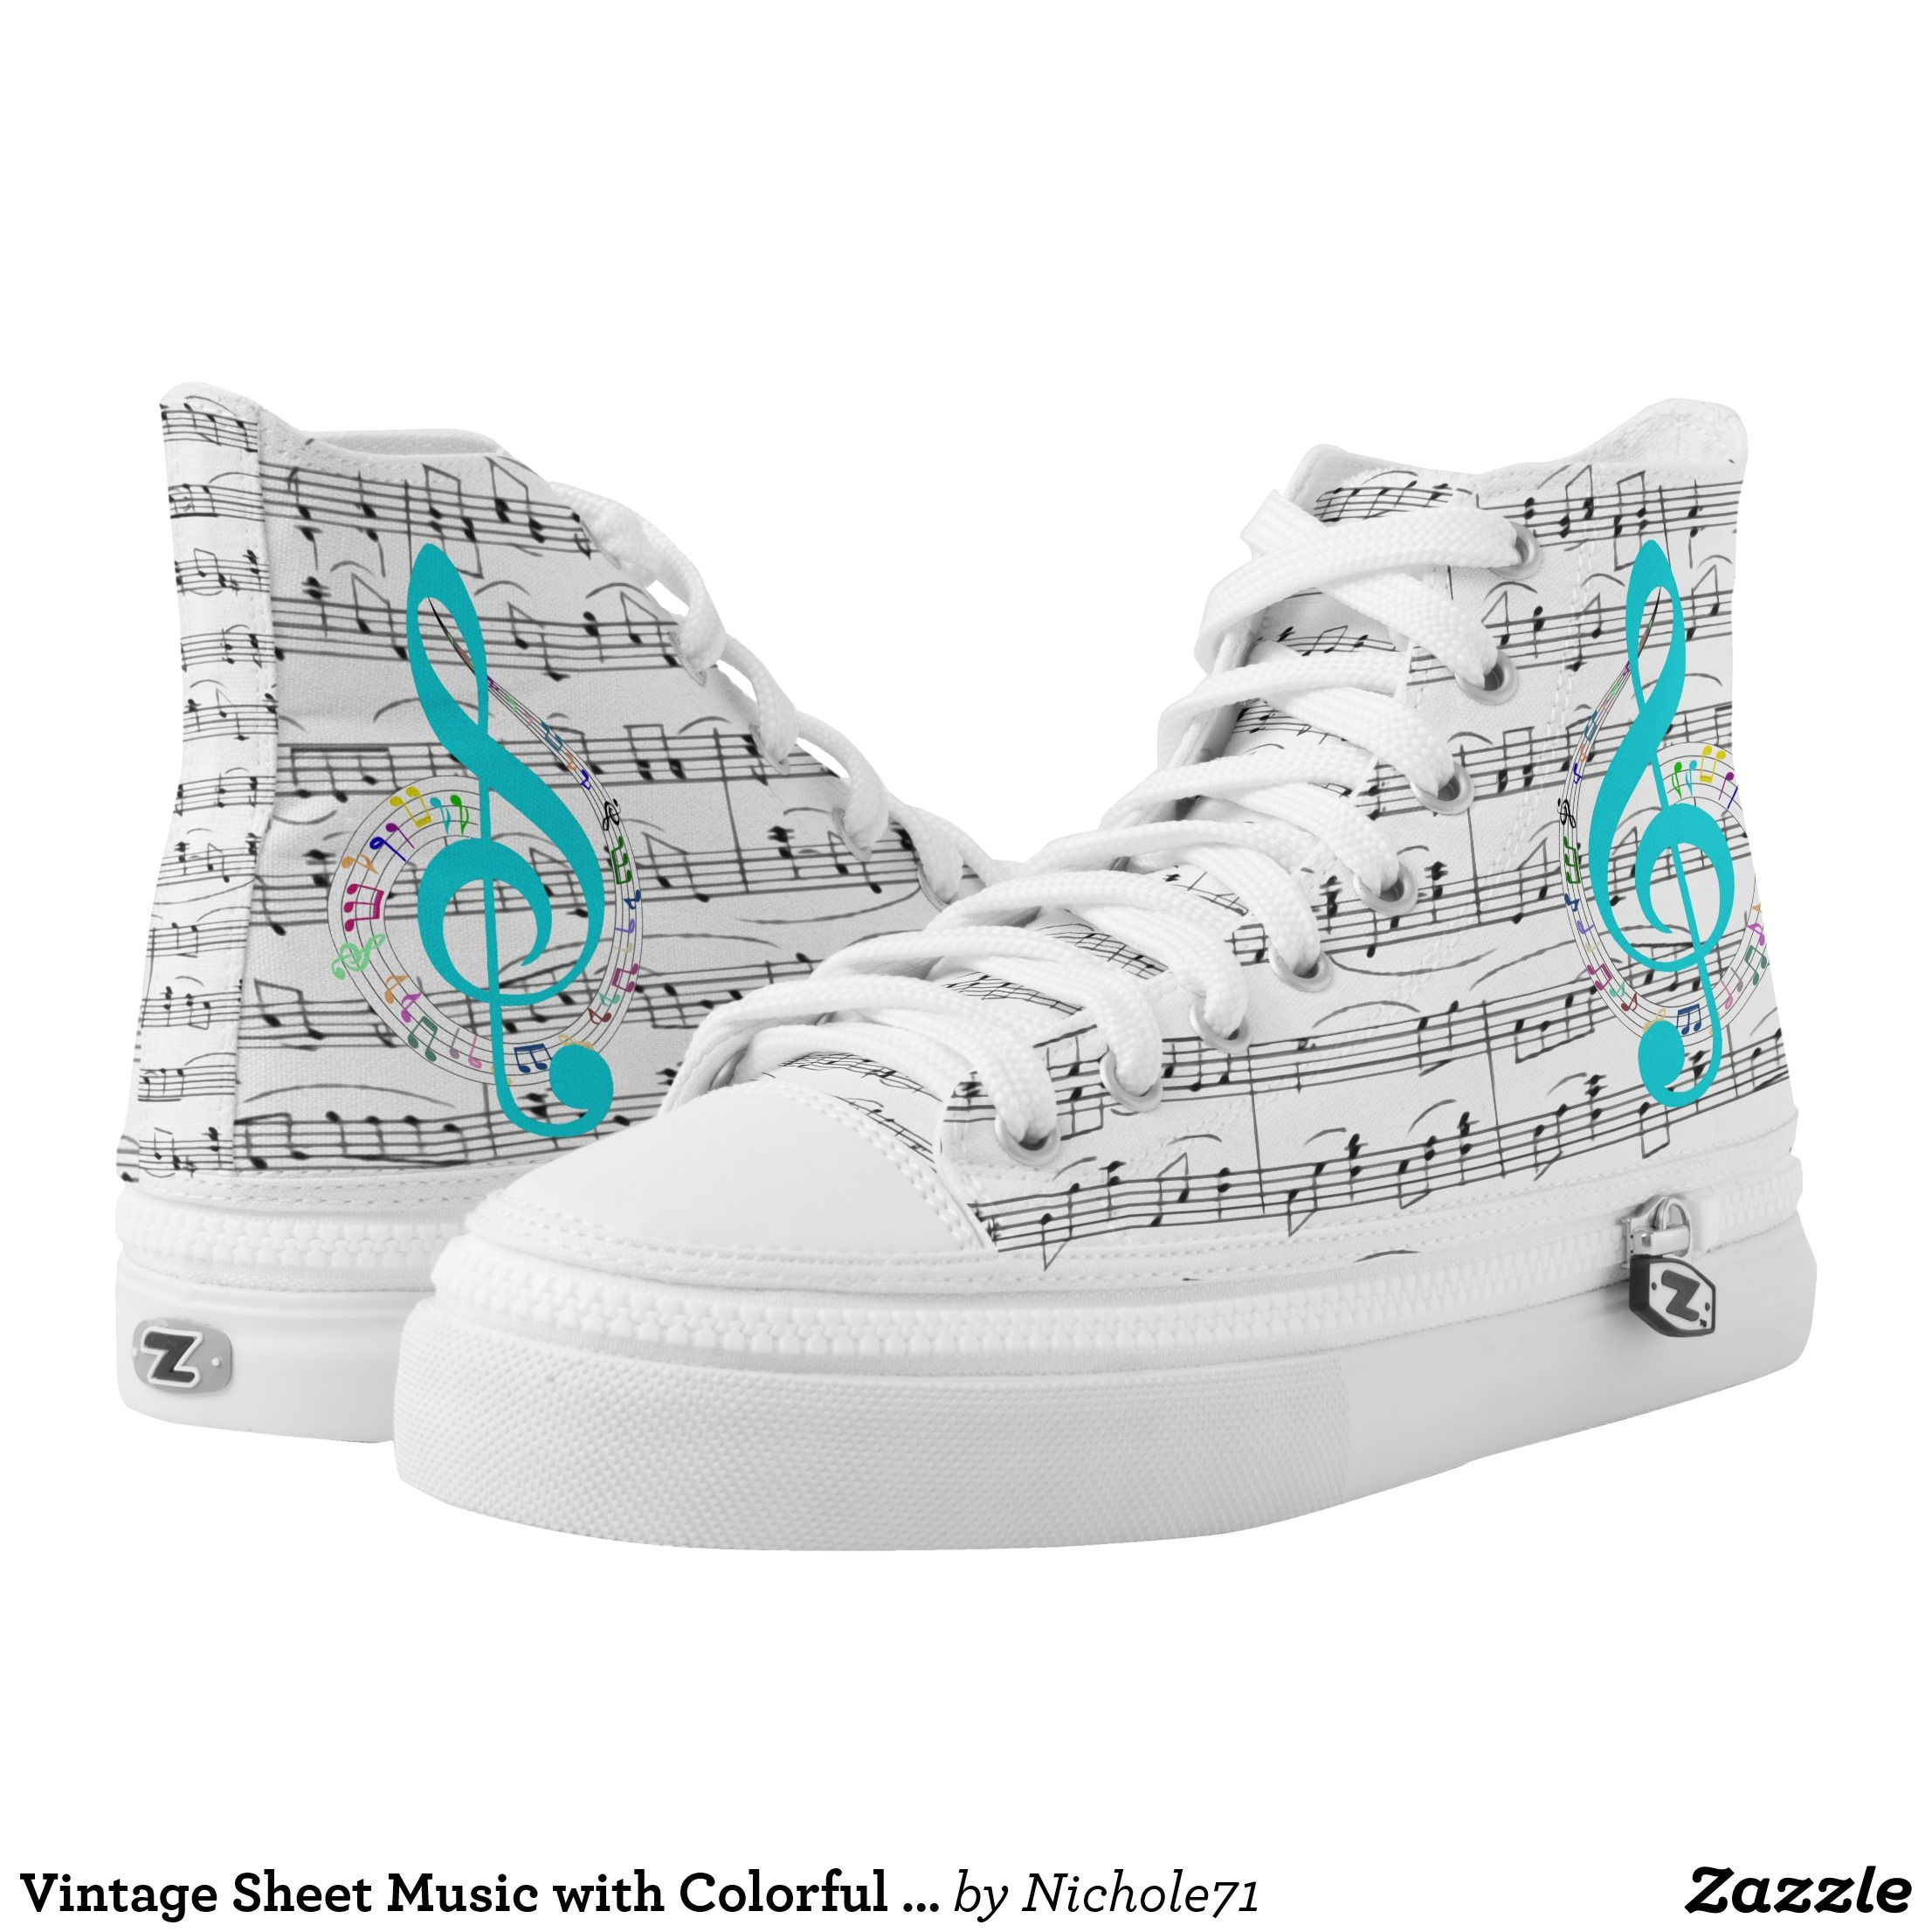 d437f466b1 Vintage Sheet Music with Colorful Music Notes High-Top Sneakers ...